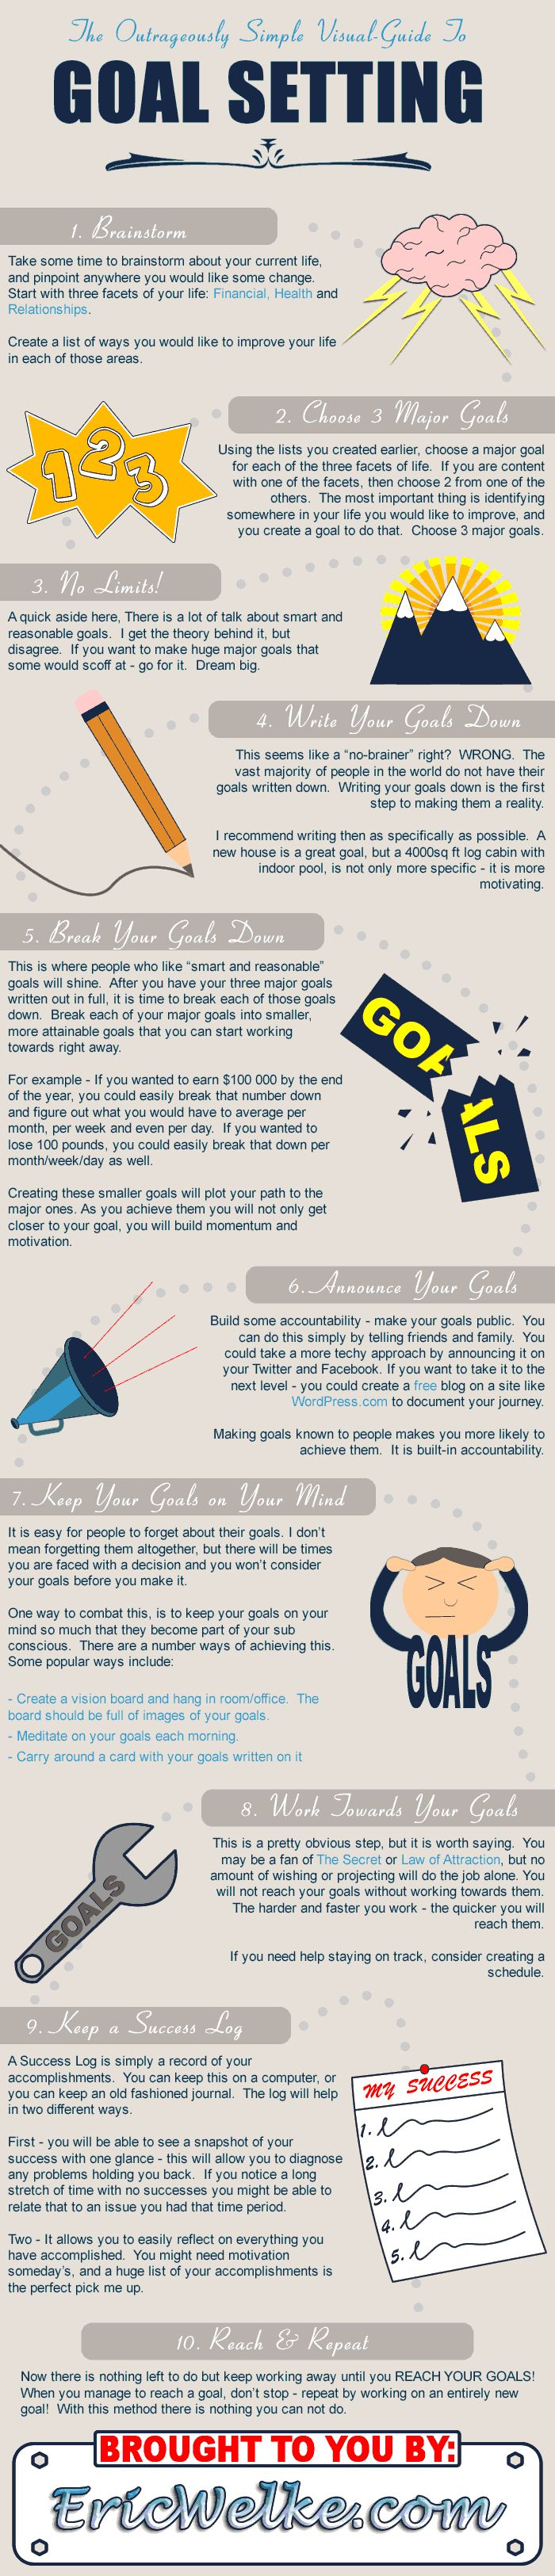 Goal Setting Tips Infographic